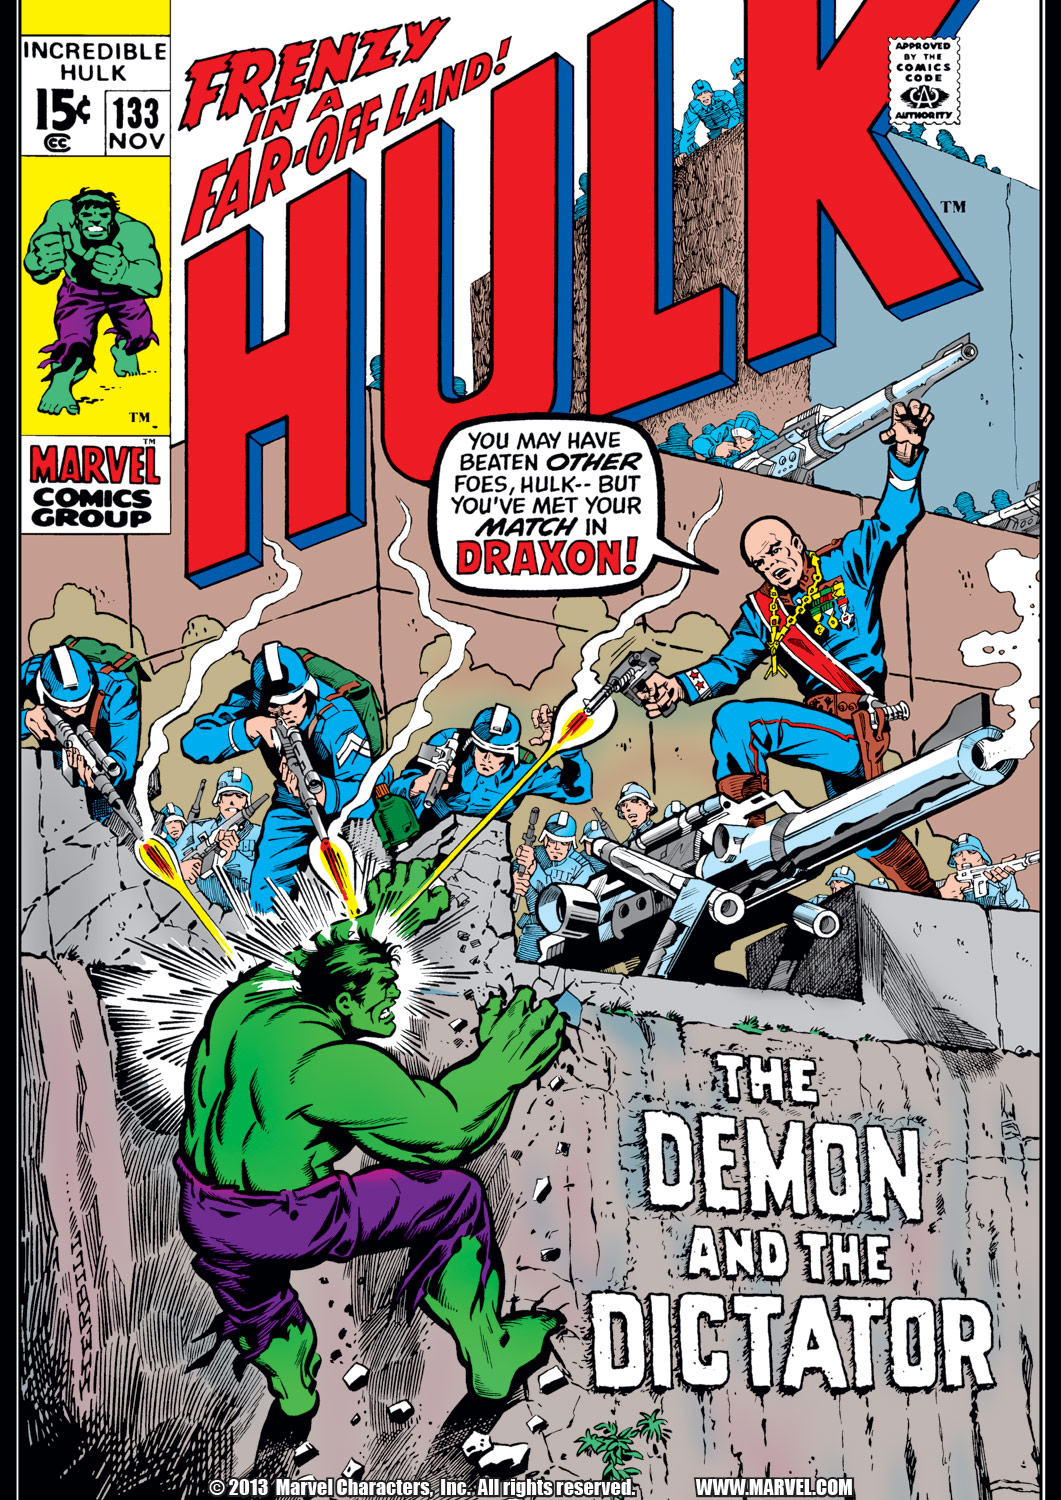 Incredible Hulk (1962) #133